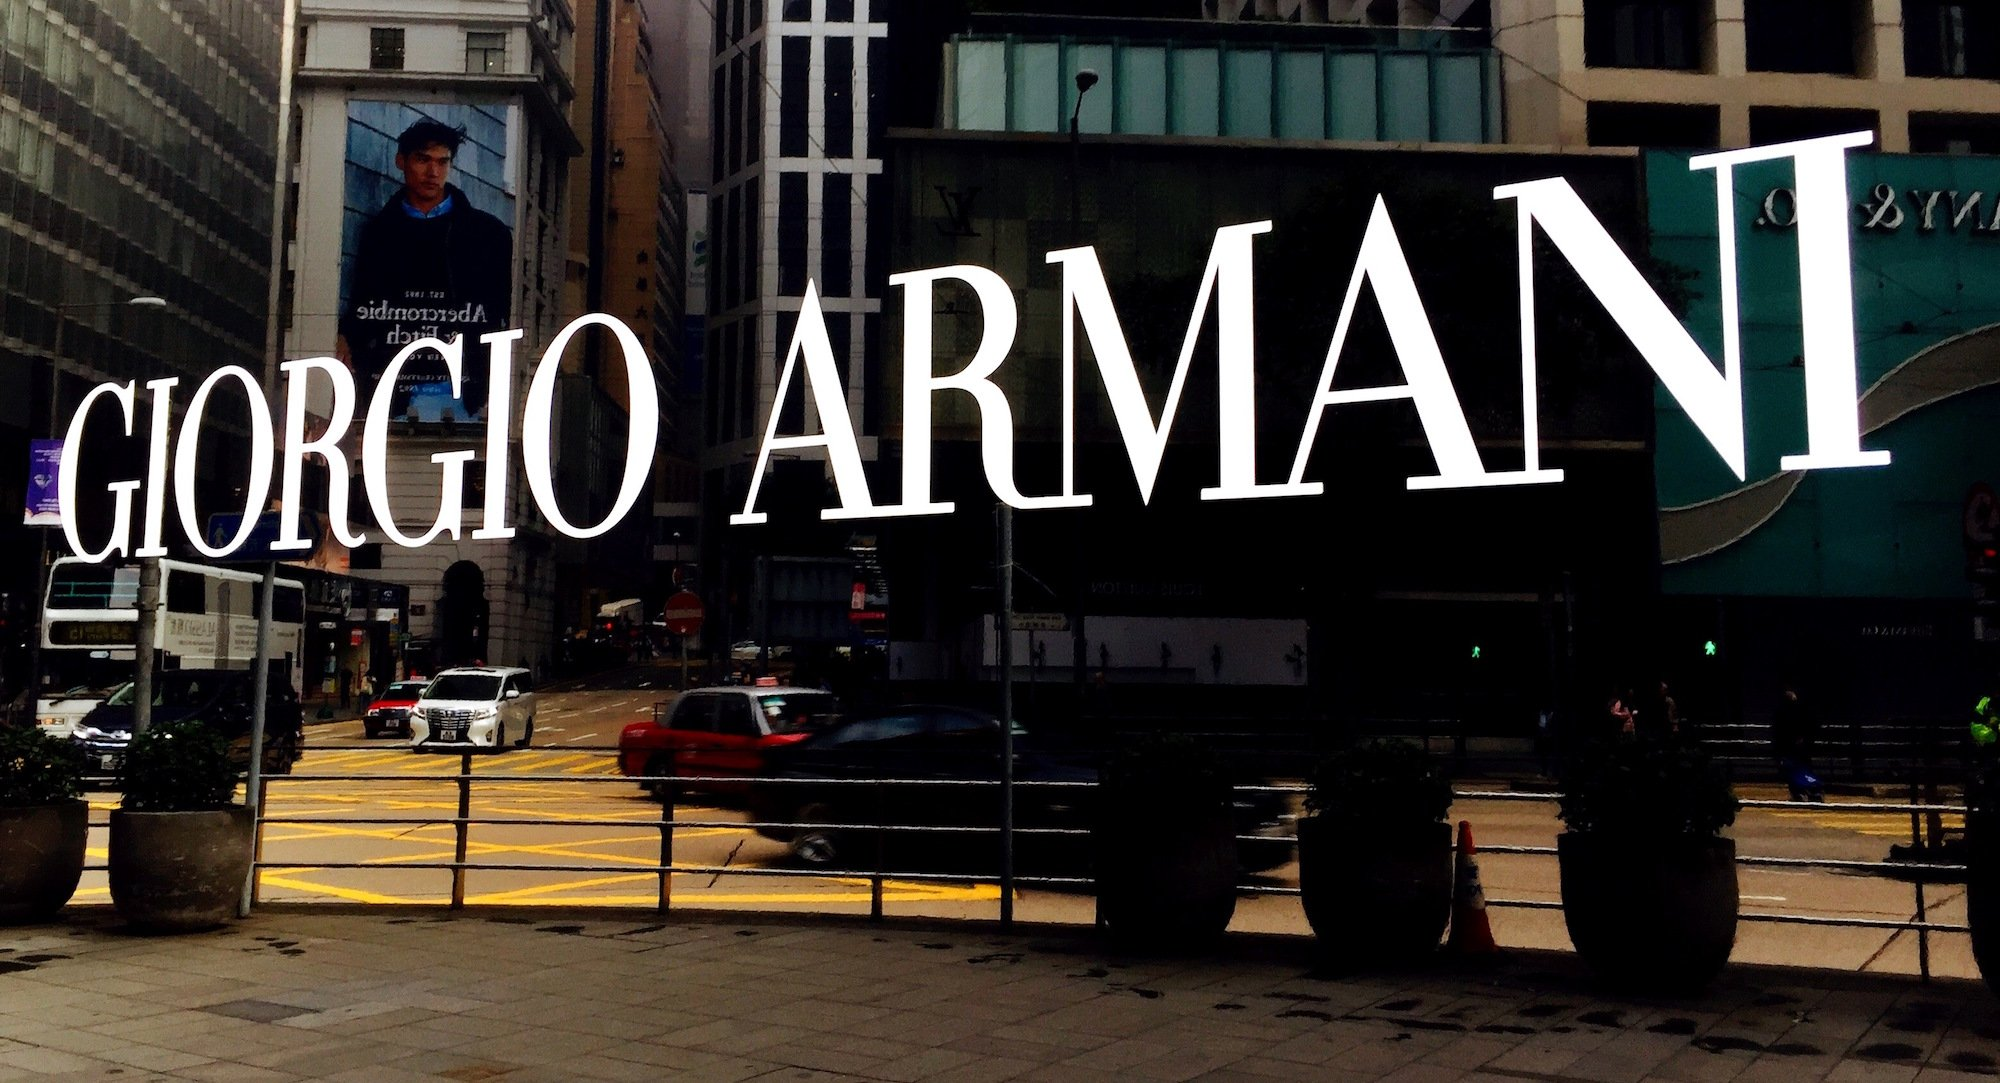 Giorgio Armani – The Iconic Global Fashion Brand